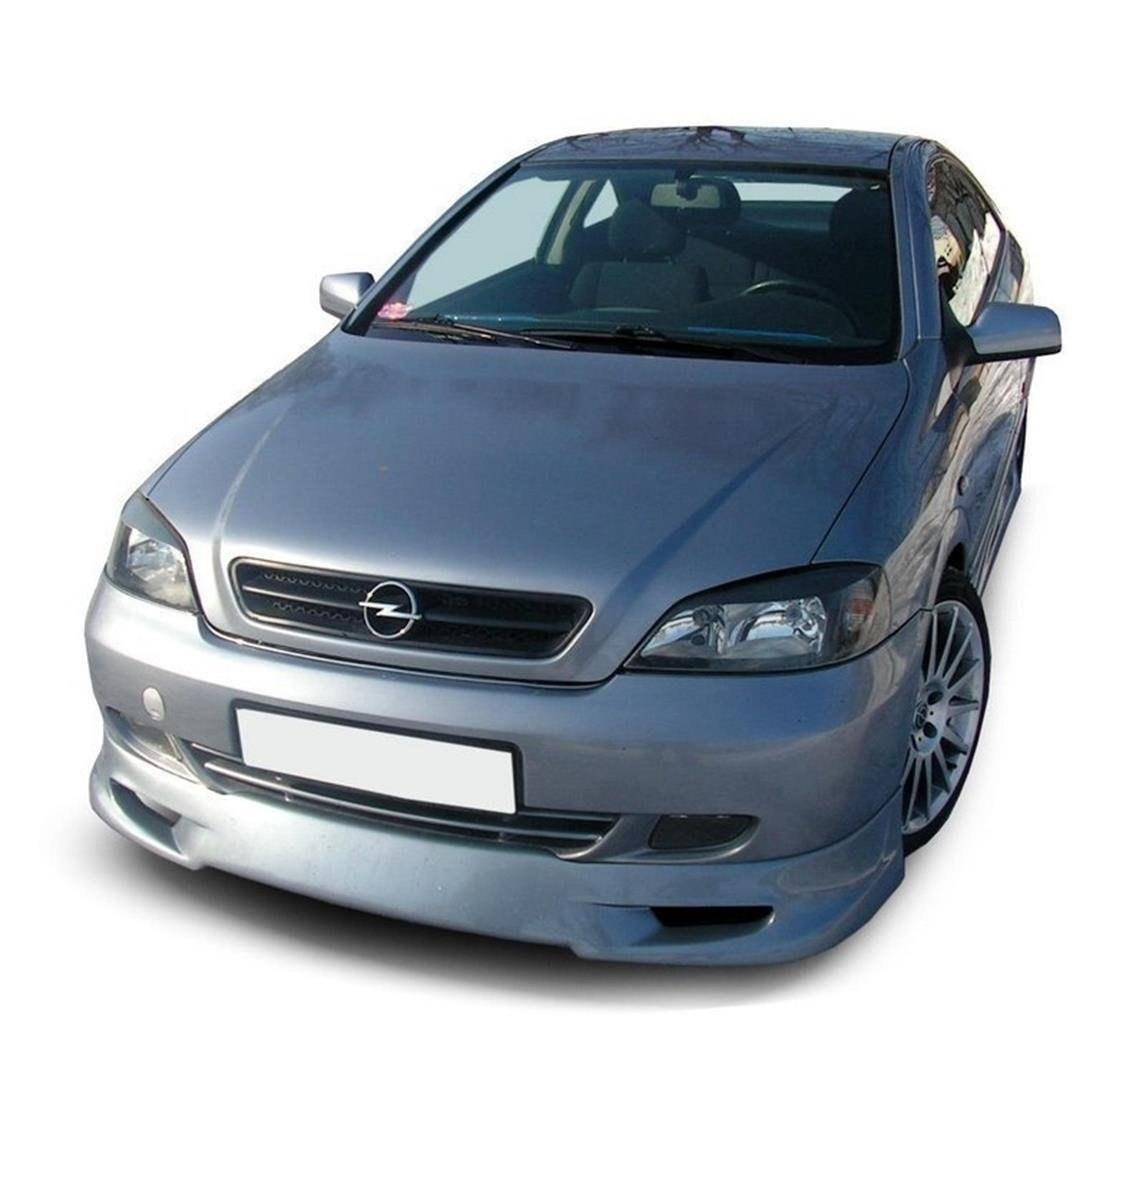 OPEL ASTRA G COUPE FRONT BUMPER SPOILER